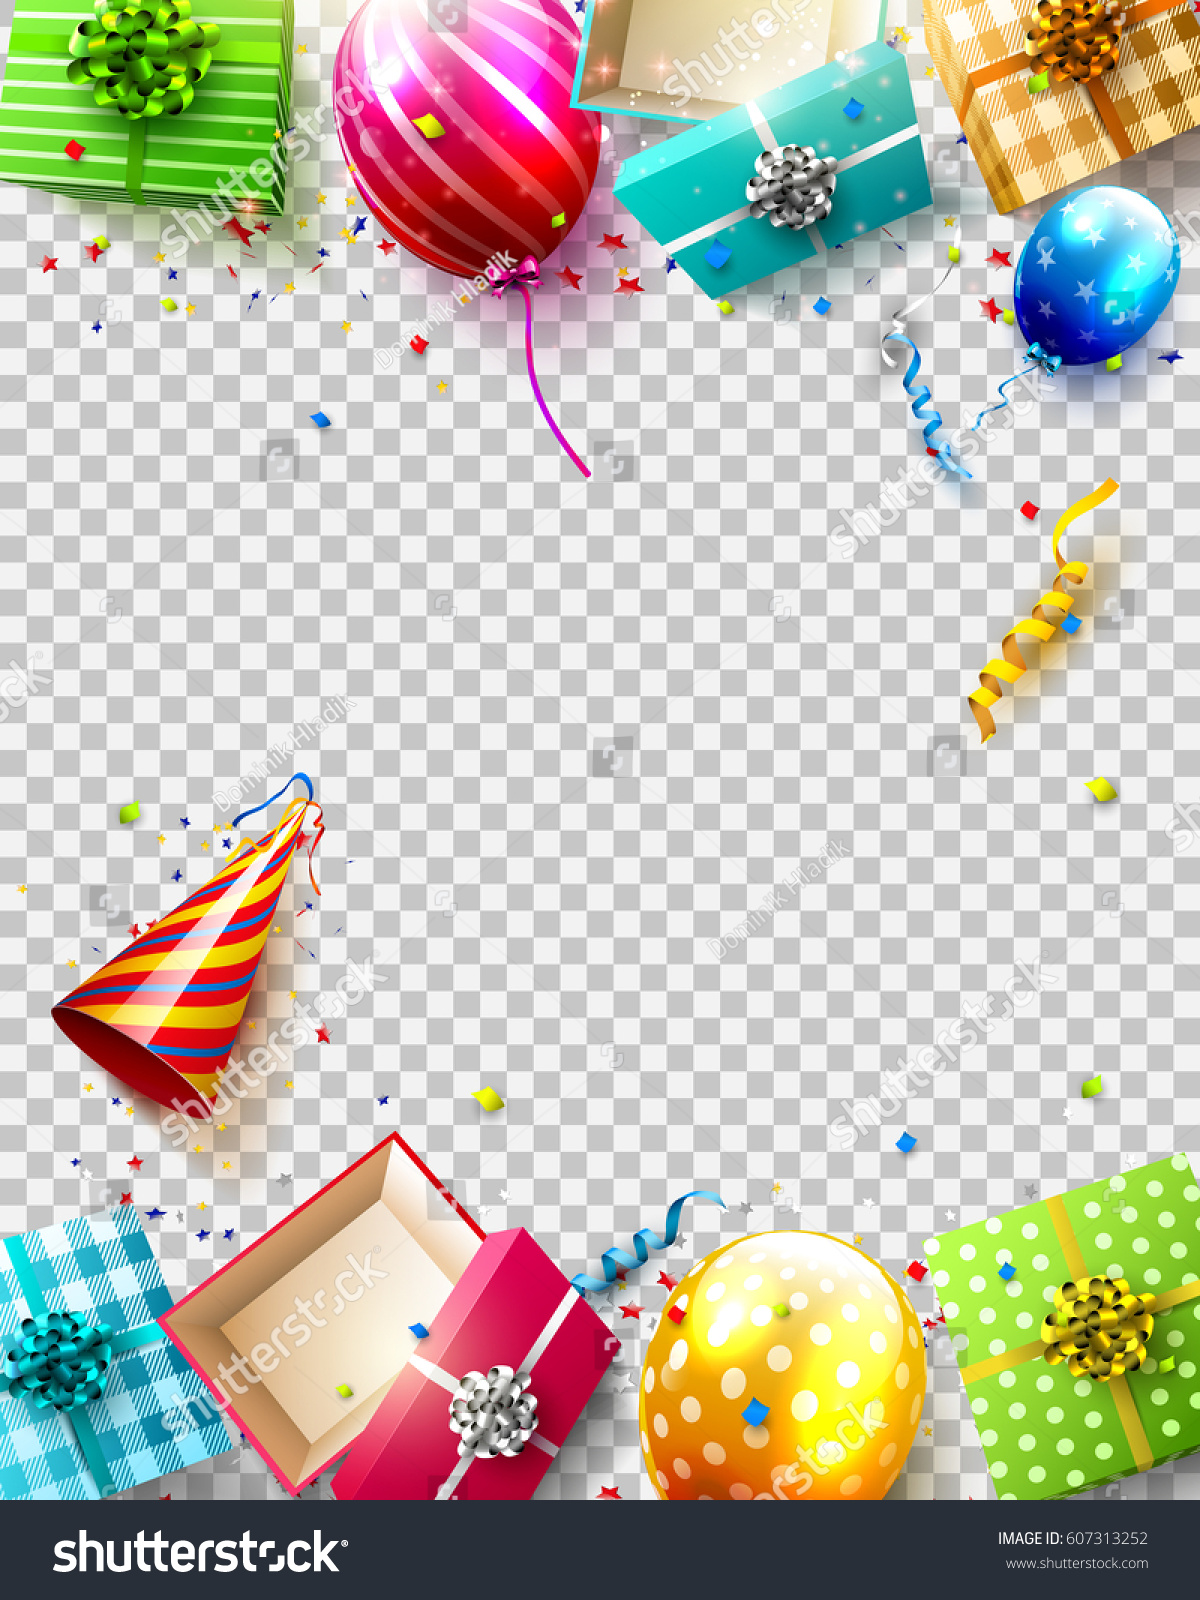 Birthday Balloons Gifts And Confetti On Transparent Background